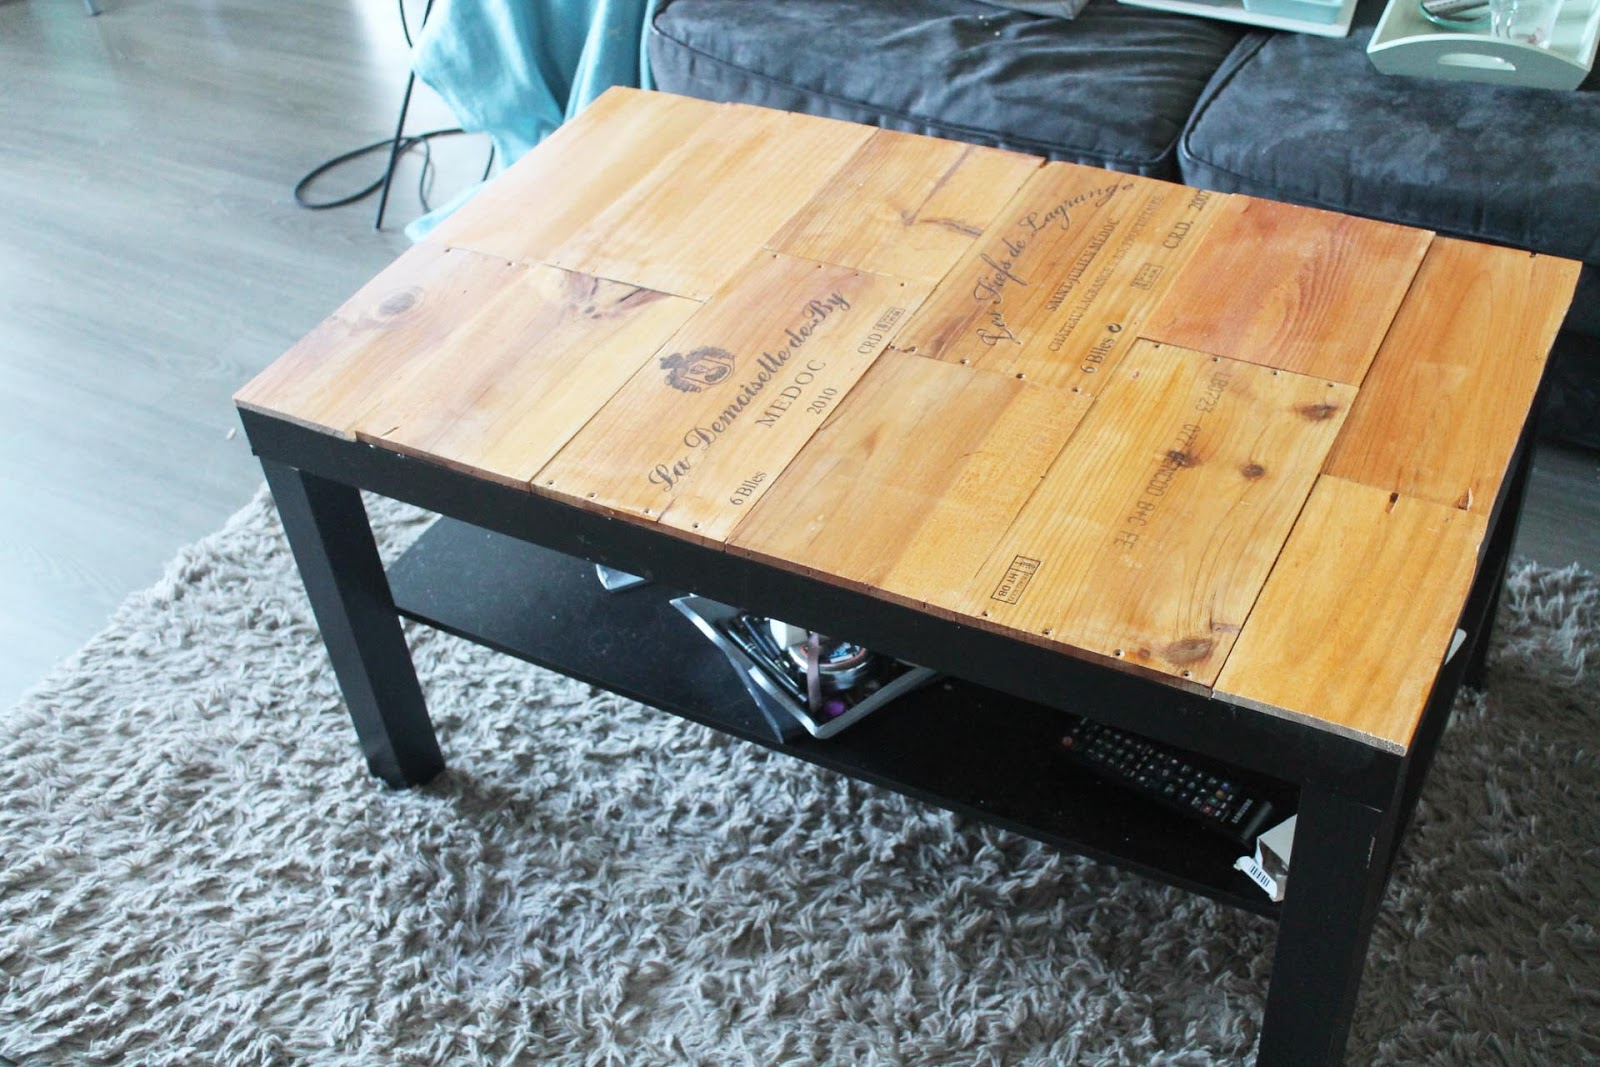 Customise ta table basse avec des caisses de vin - Customiser une table en bois ...